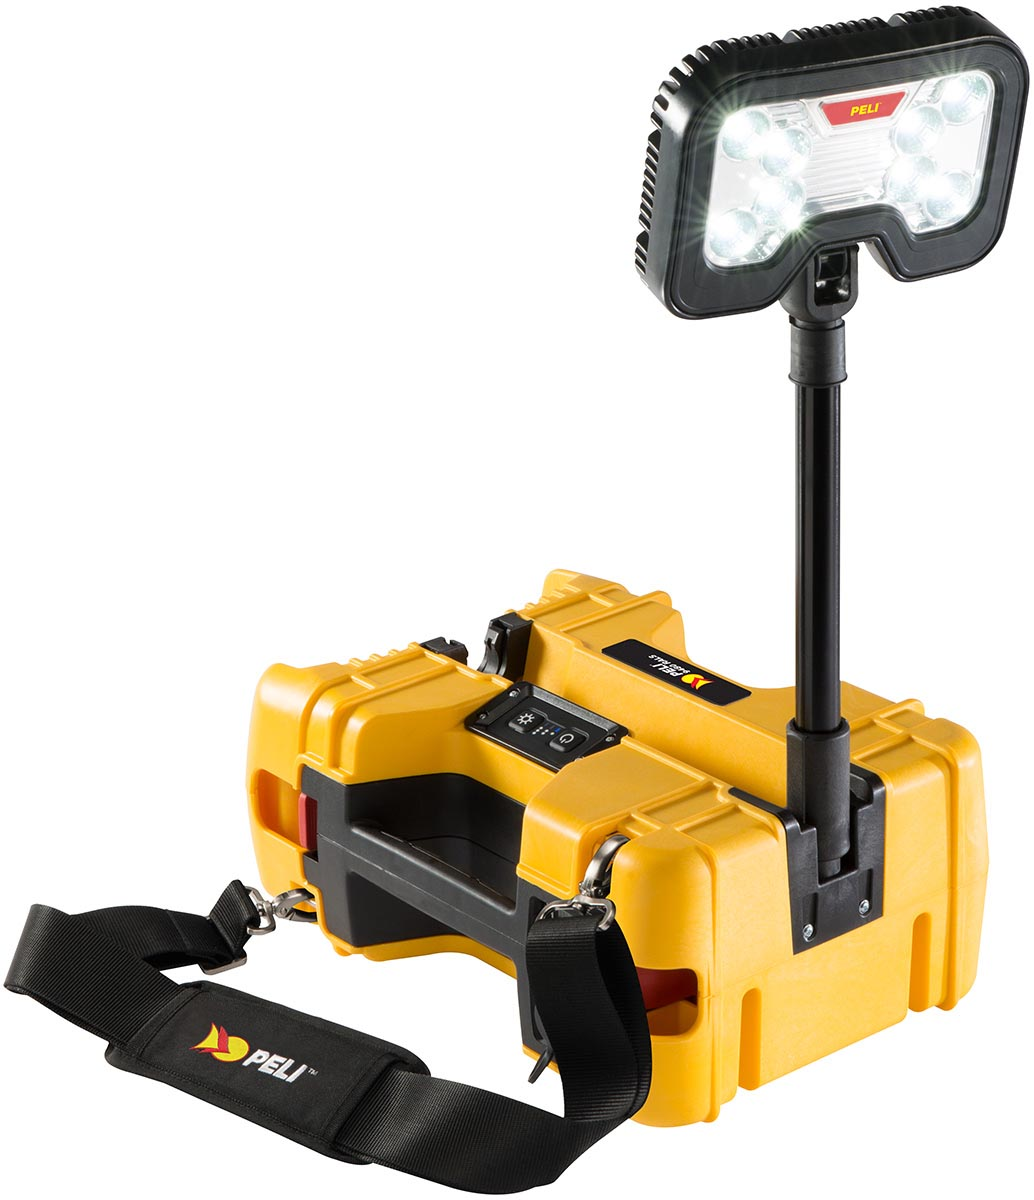 pelican peli products 9480 mobile led emergency work light